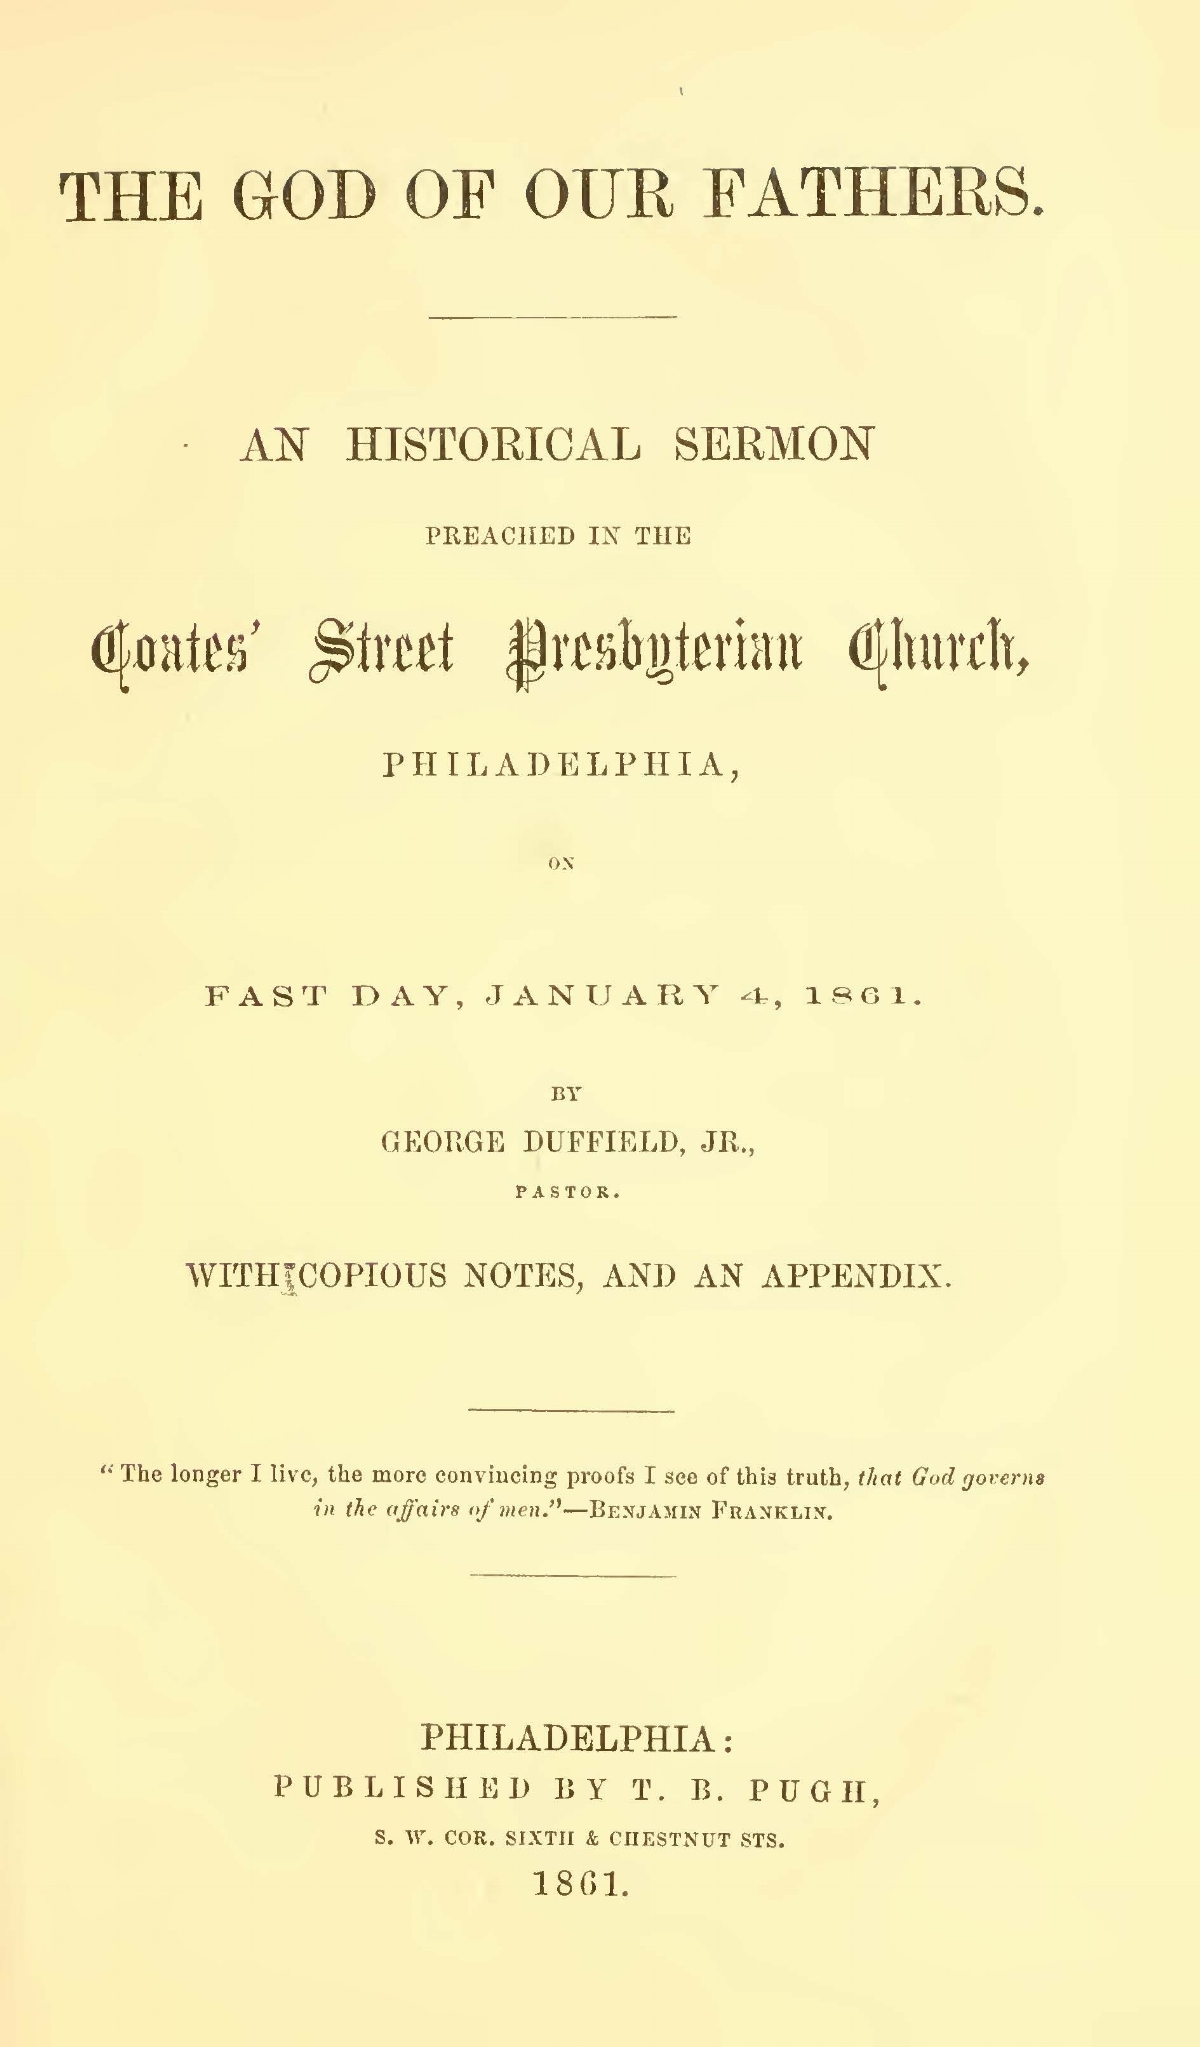 Duffield, V, George, The God of Our Fathers Title Page.jpg